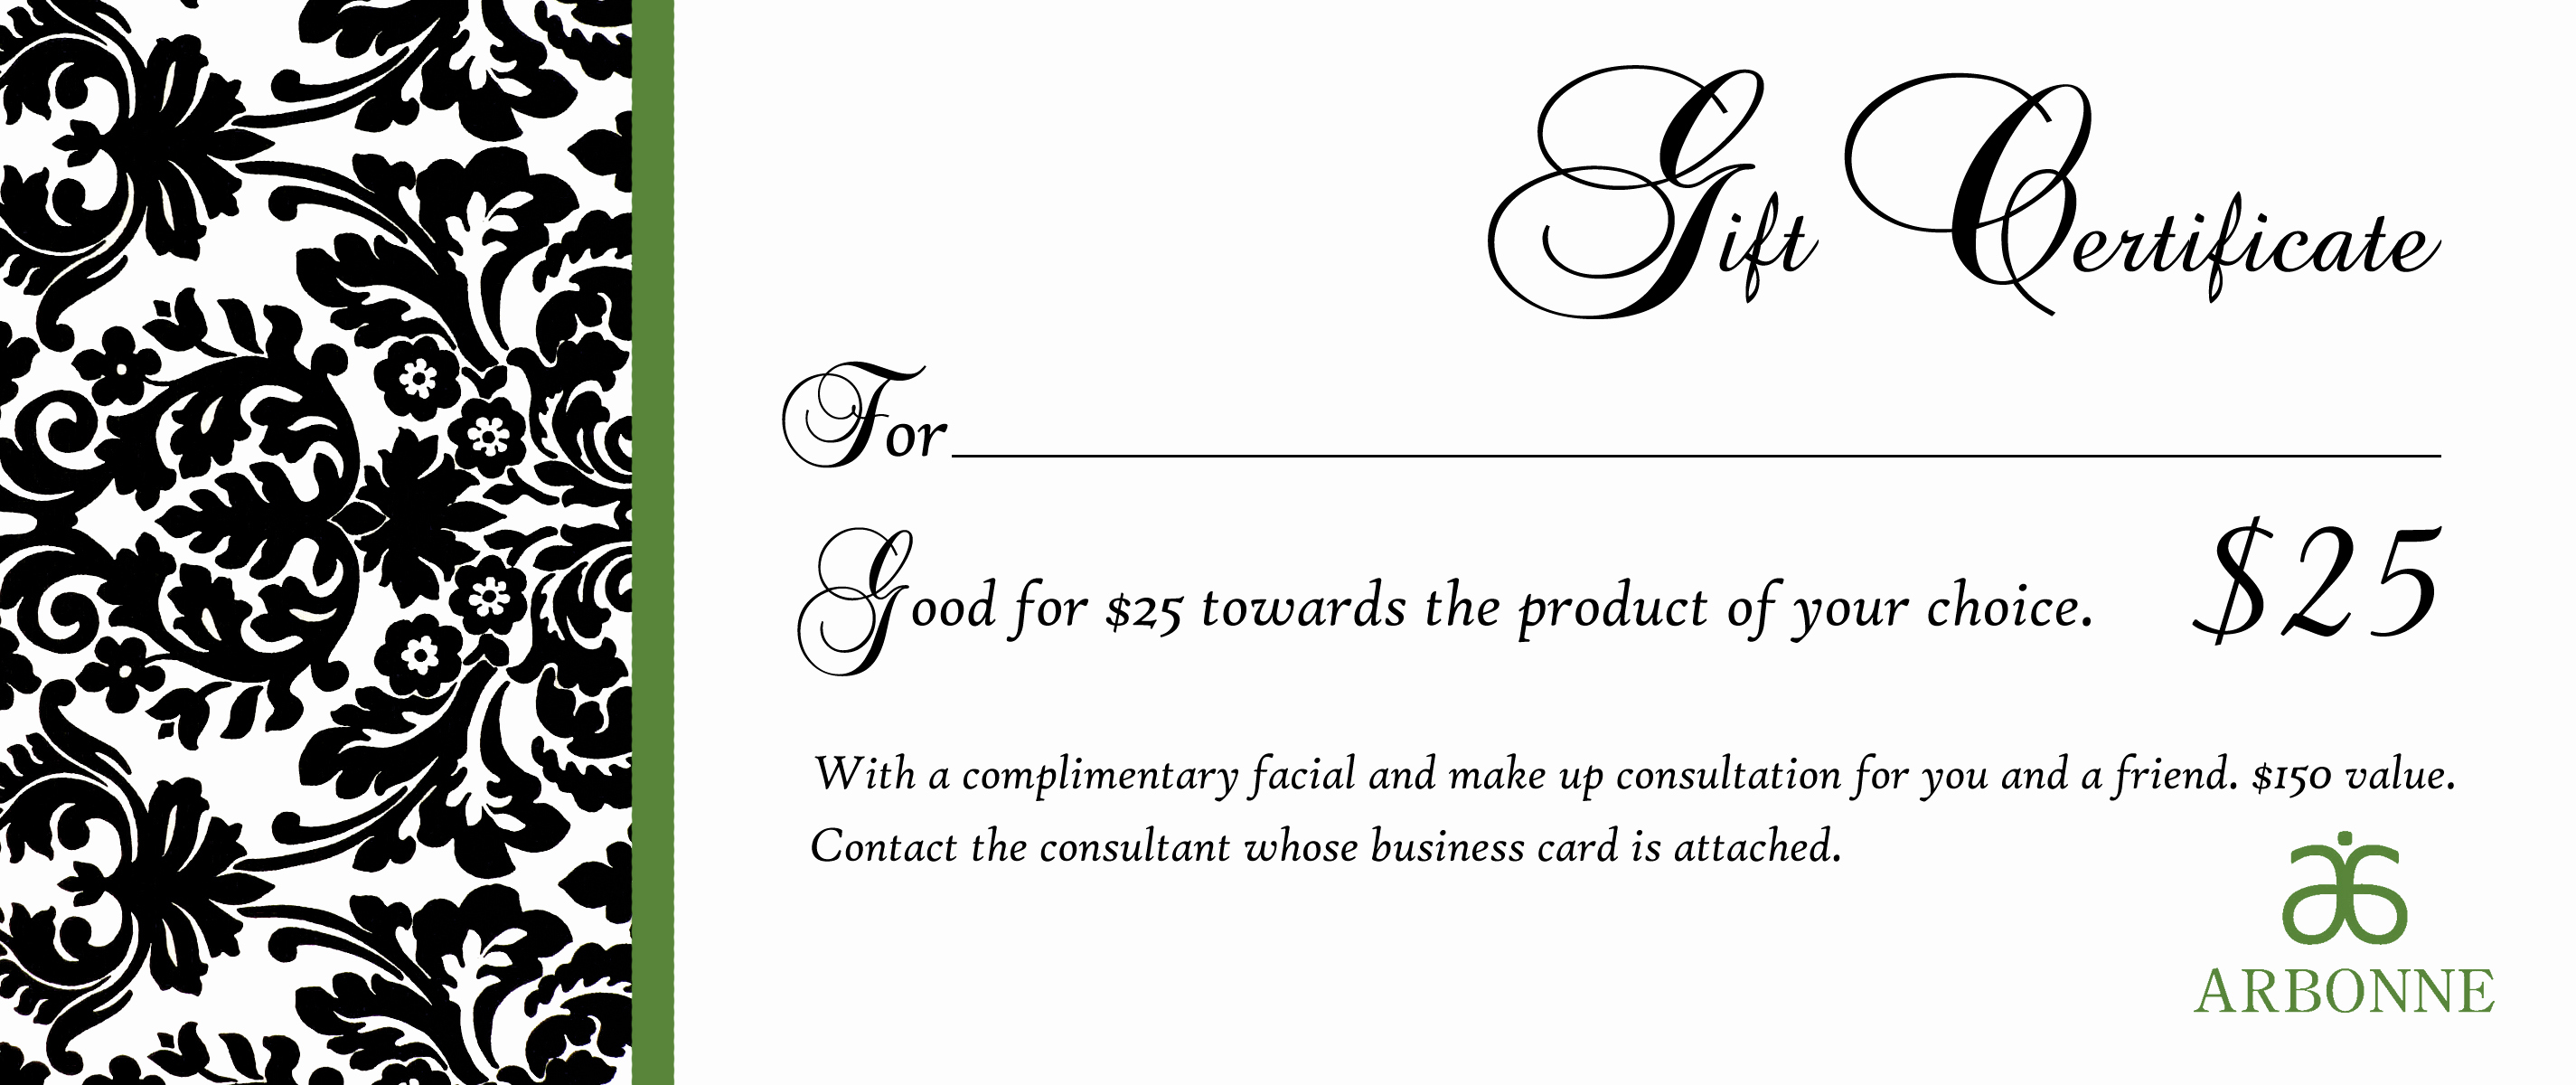 Free Printable Gift Certificate Templates Elegant 18 Gift Certificate Templates Excel Pdf formats